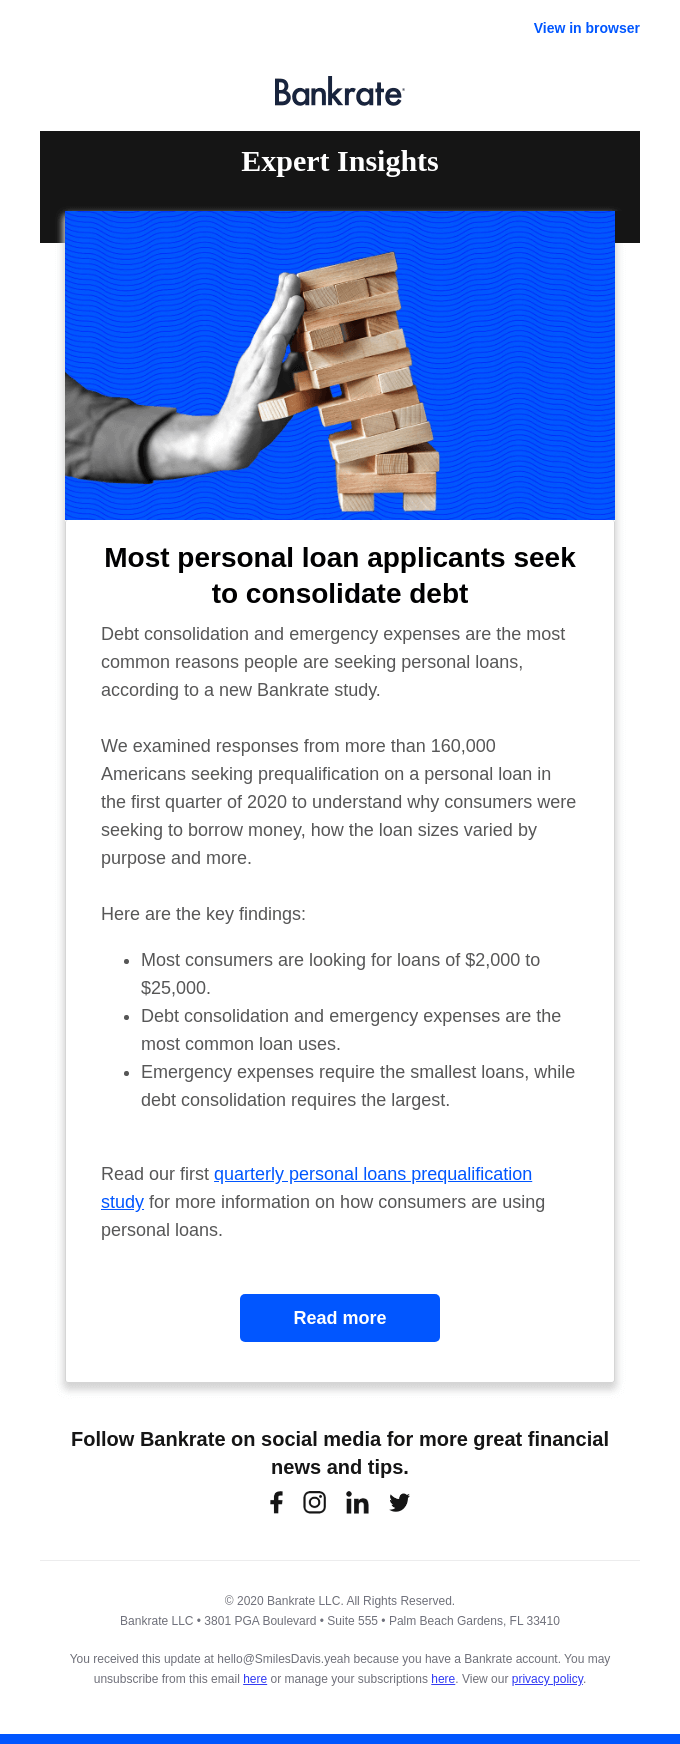 The top reason people seek personal loans